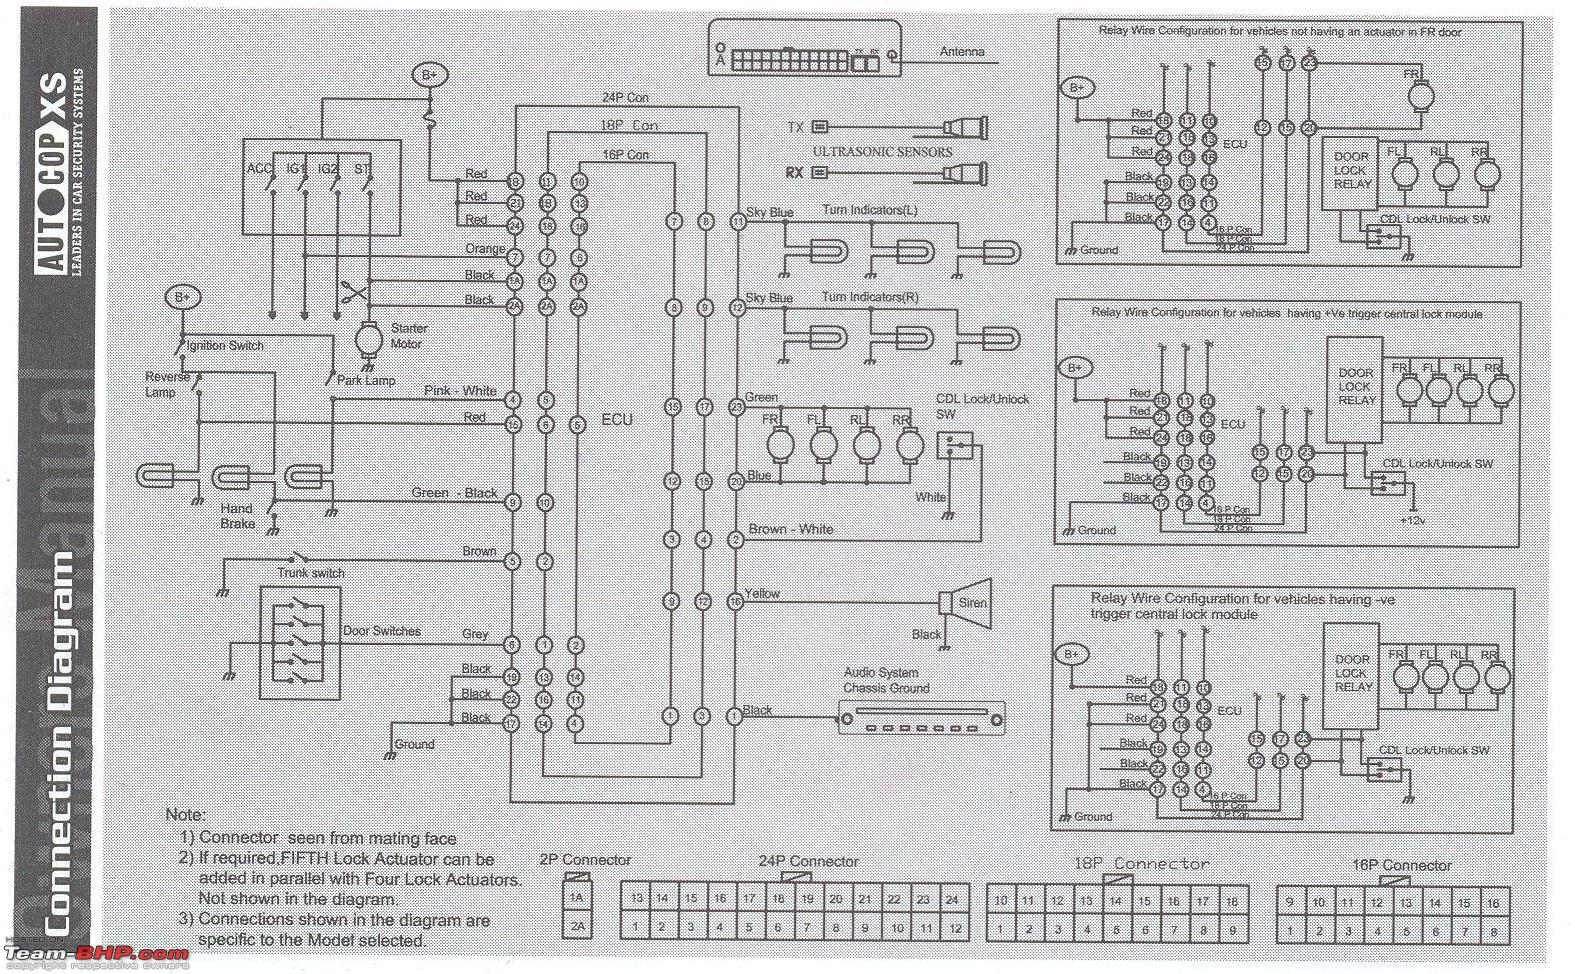 Autocop Xs Manual Wiring Diagram Team Bhp The Schematic Of Door Alarm Circuit Image 5